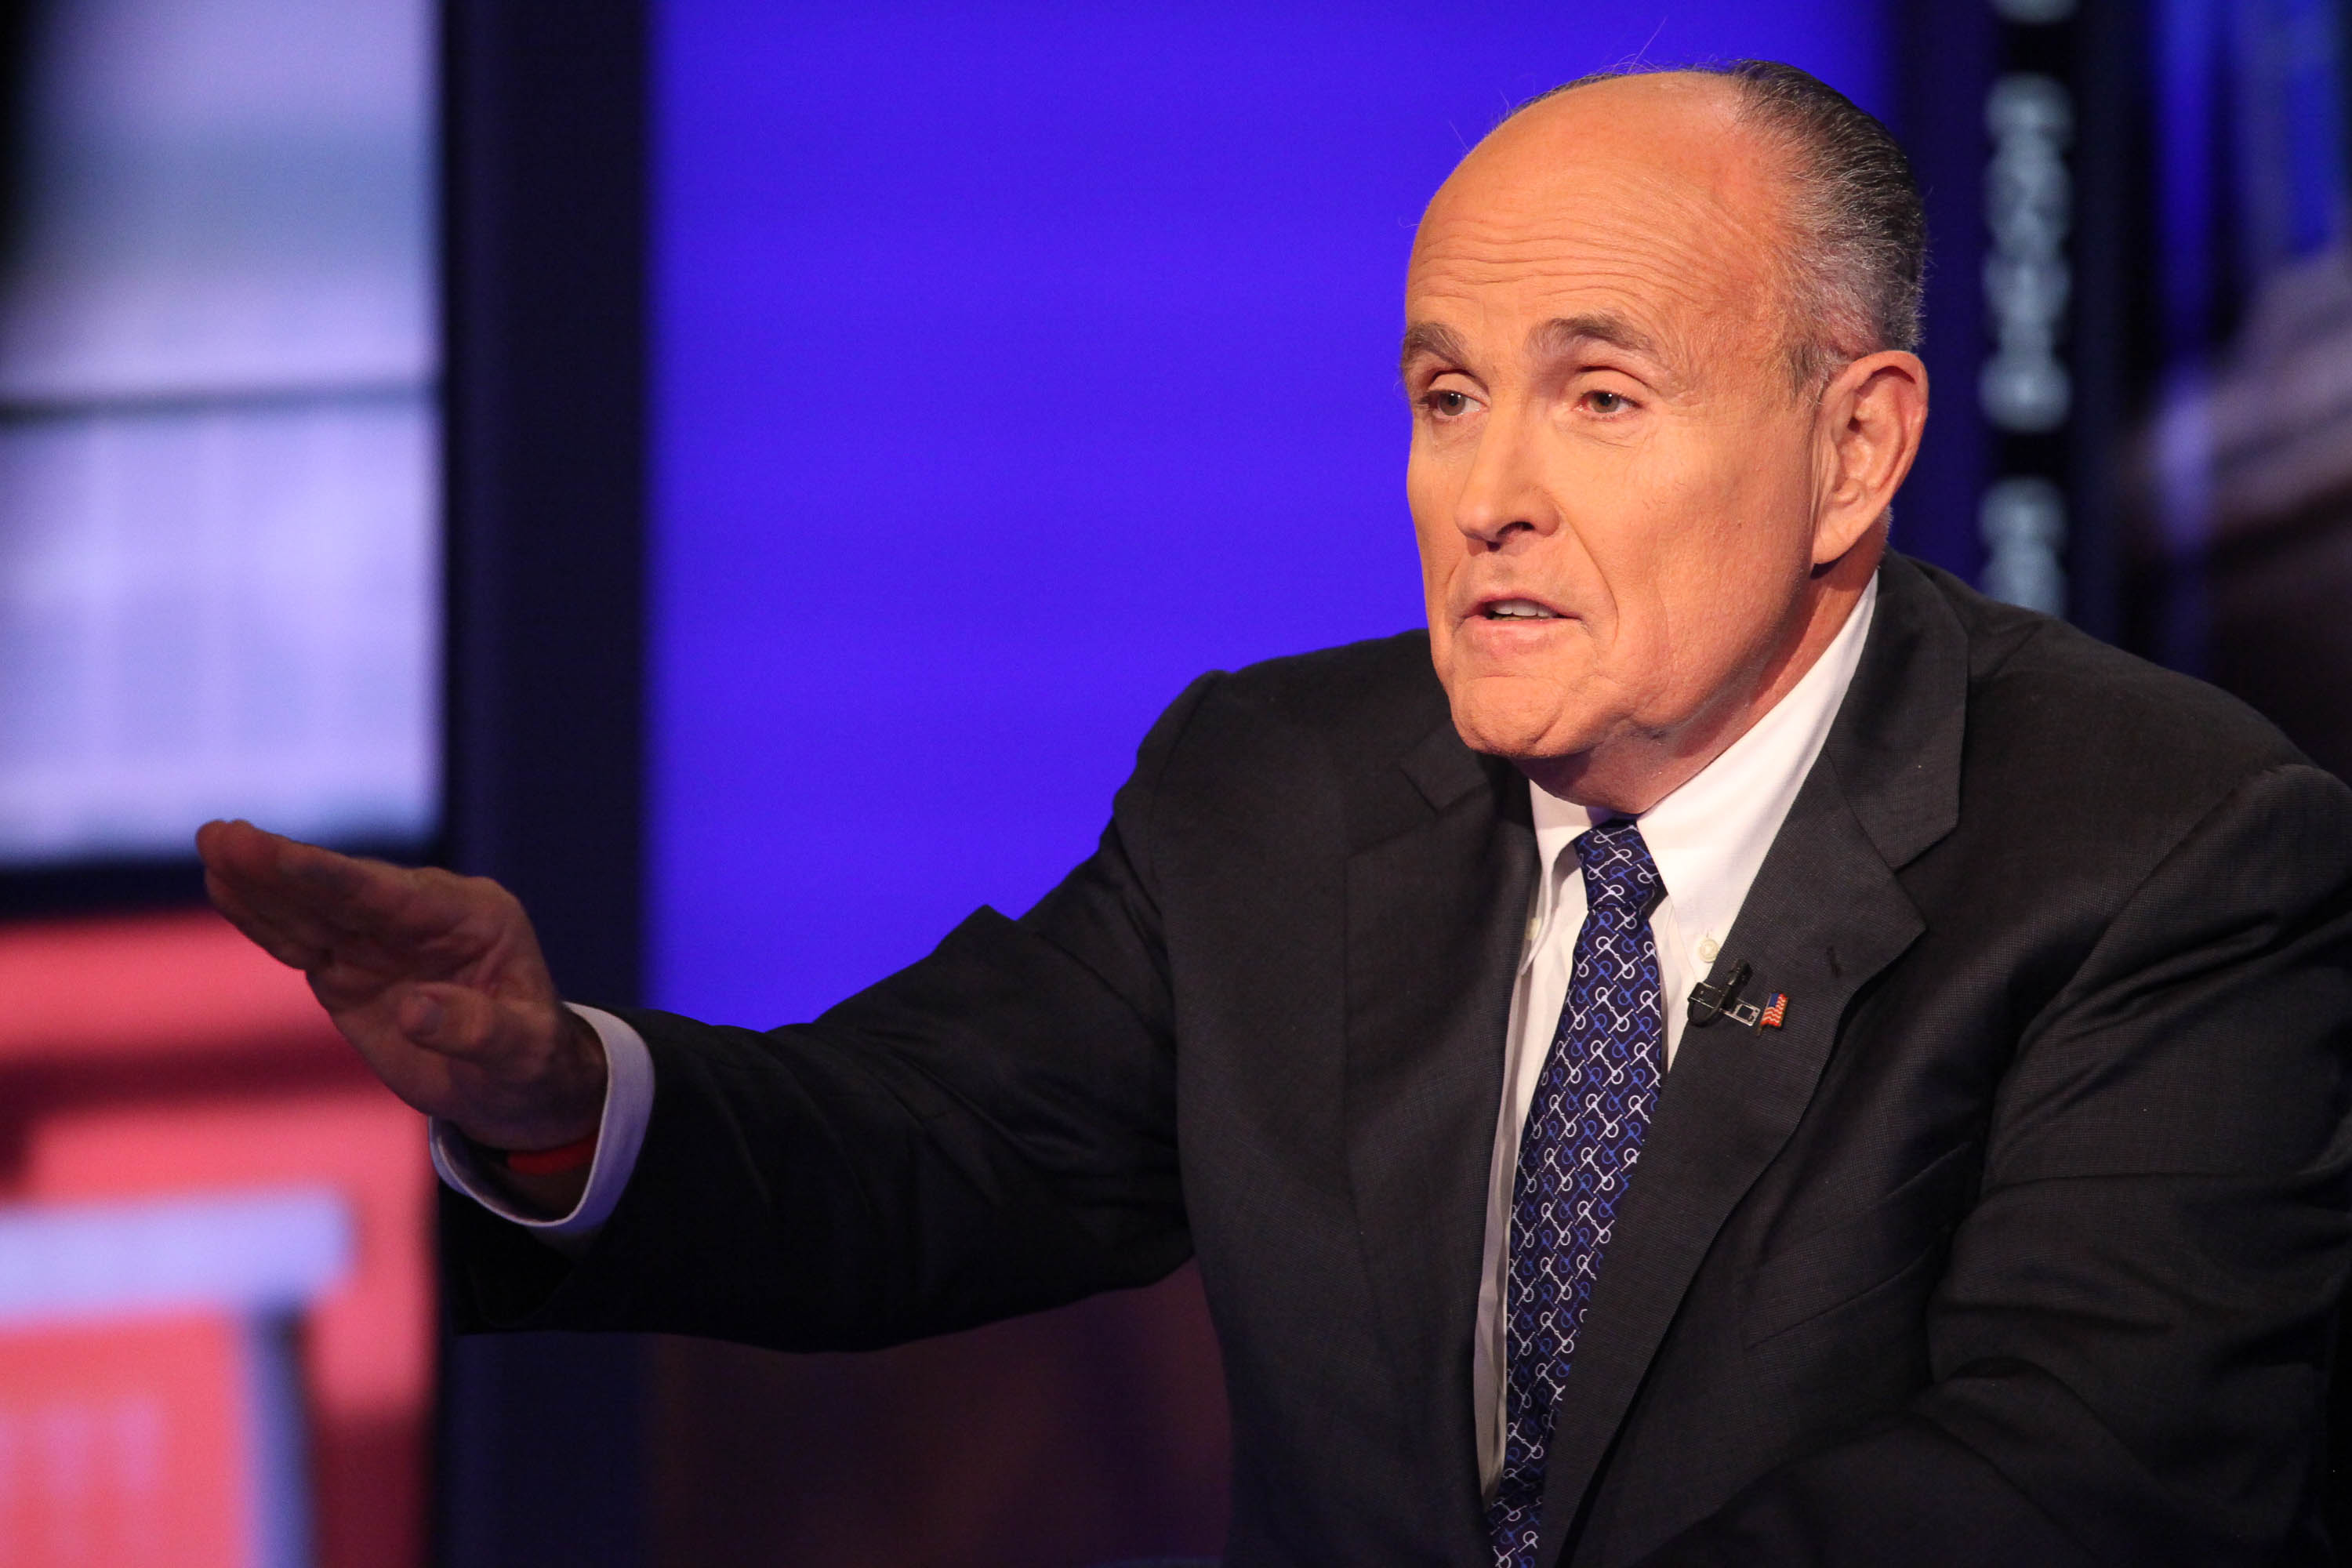 Former Mayor Rudolph Giuliani, who came to N.J. Governor Chris Christie's defense back in 2014.